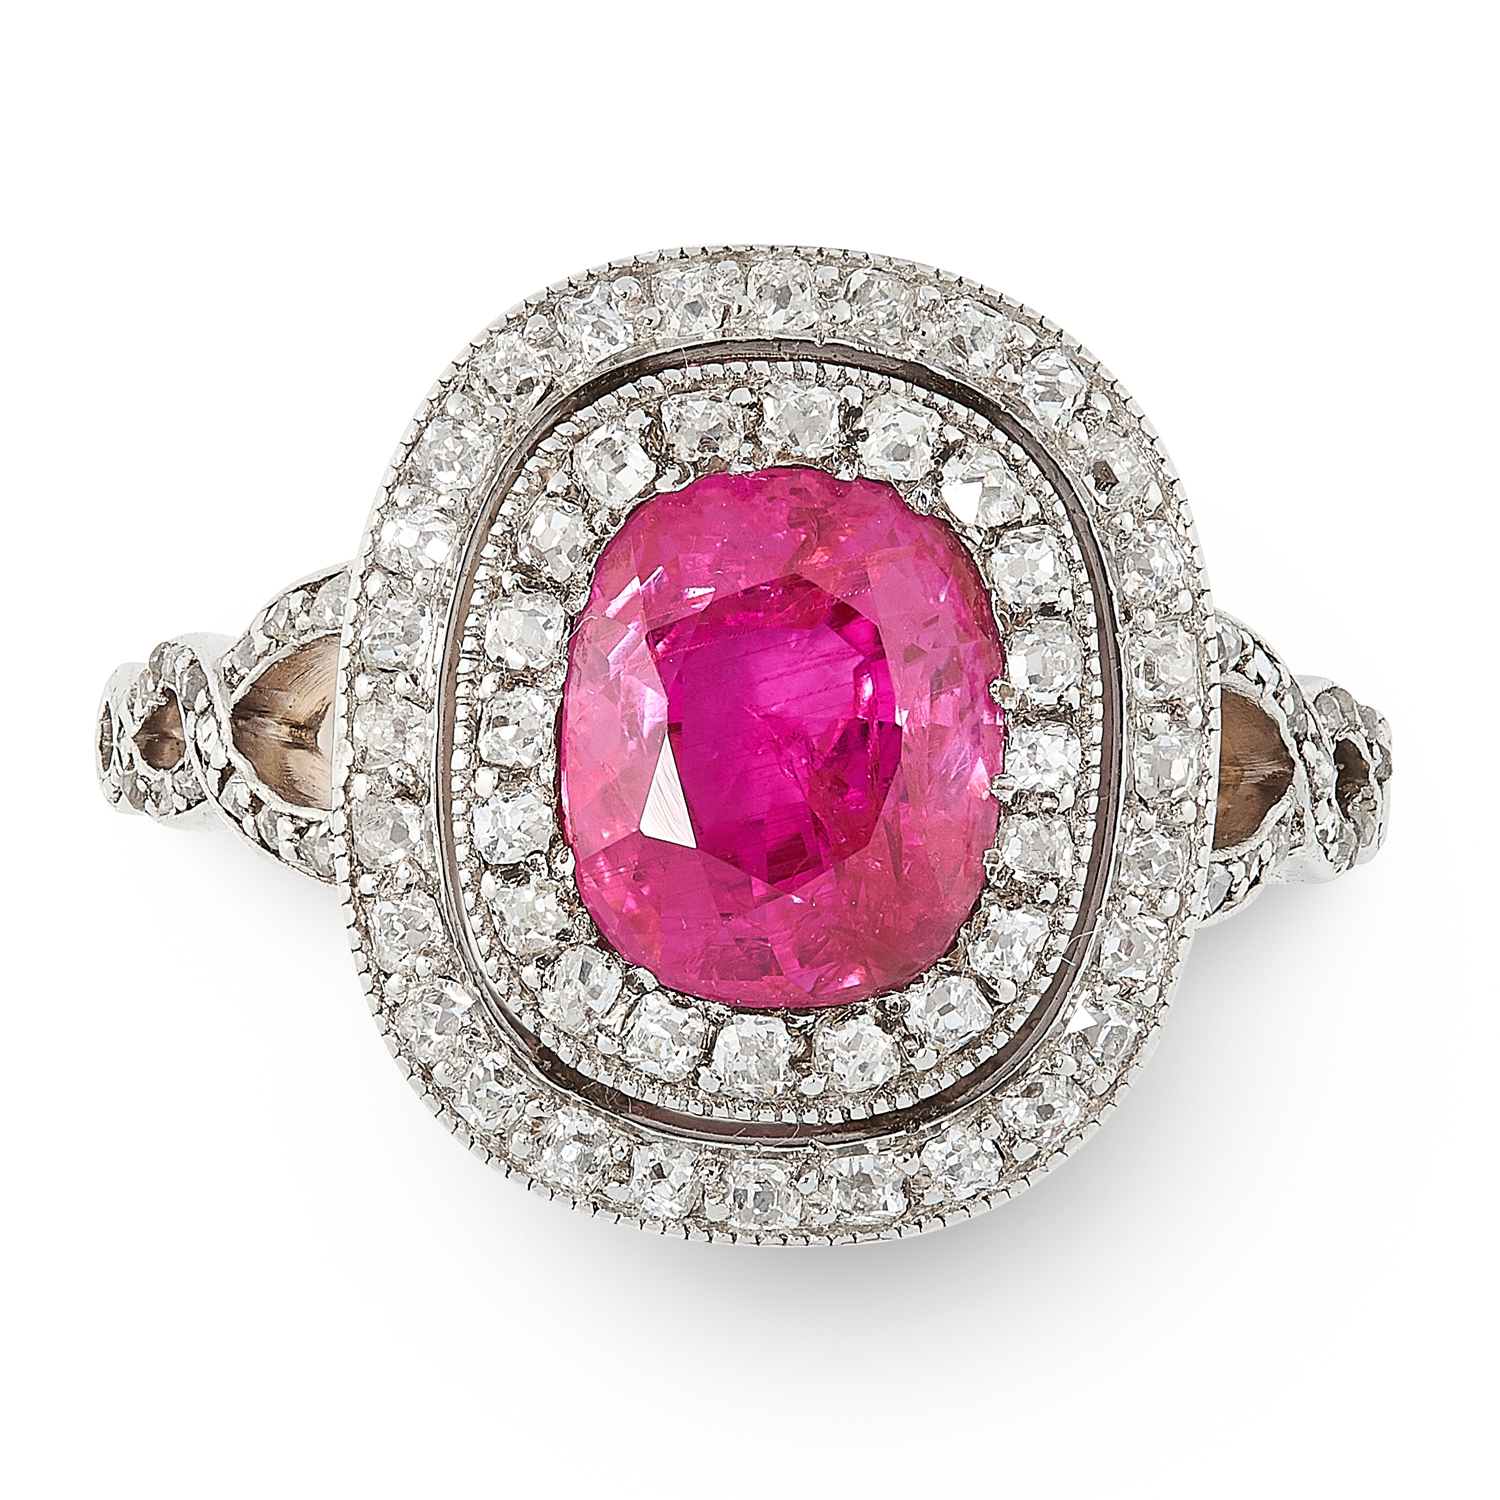 A BURMA NO HEAT RUBY AND DIAMOND RING in 18ct yellow gold, set with a cushion cut ruby of 2.85